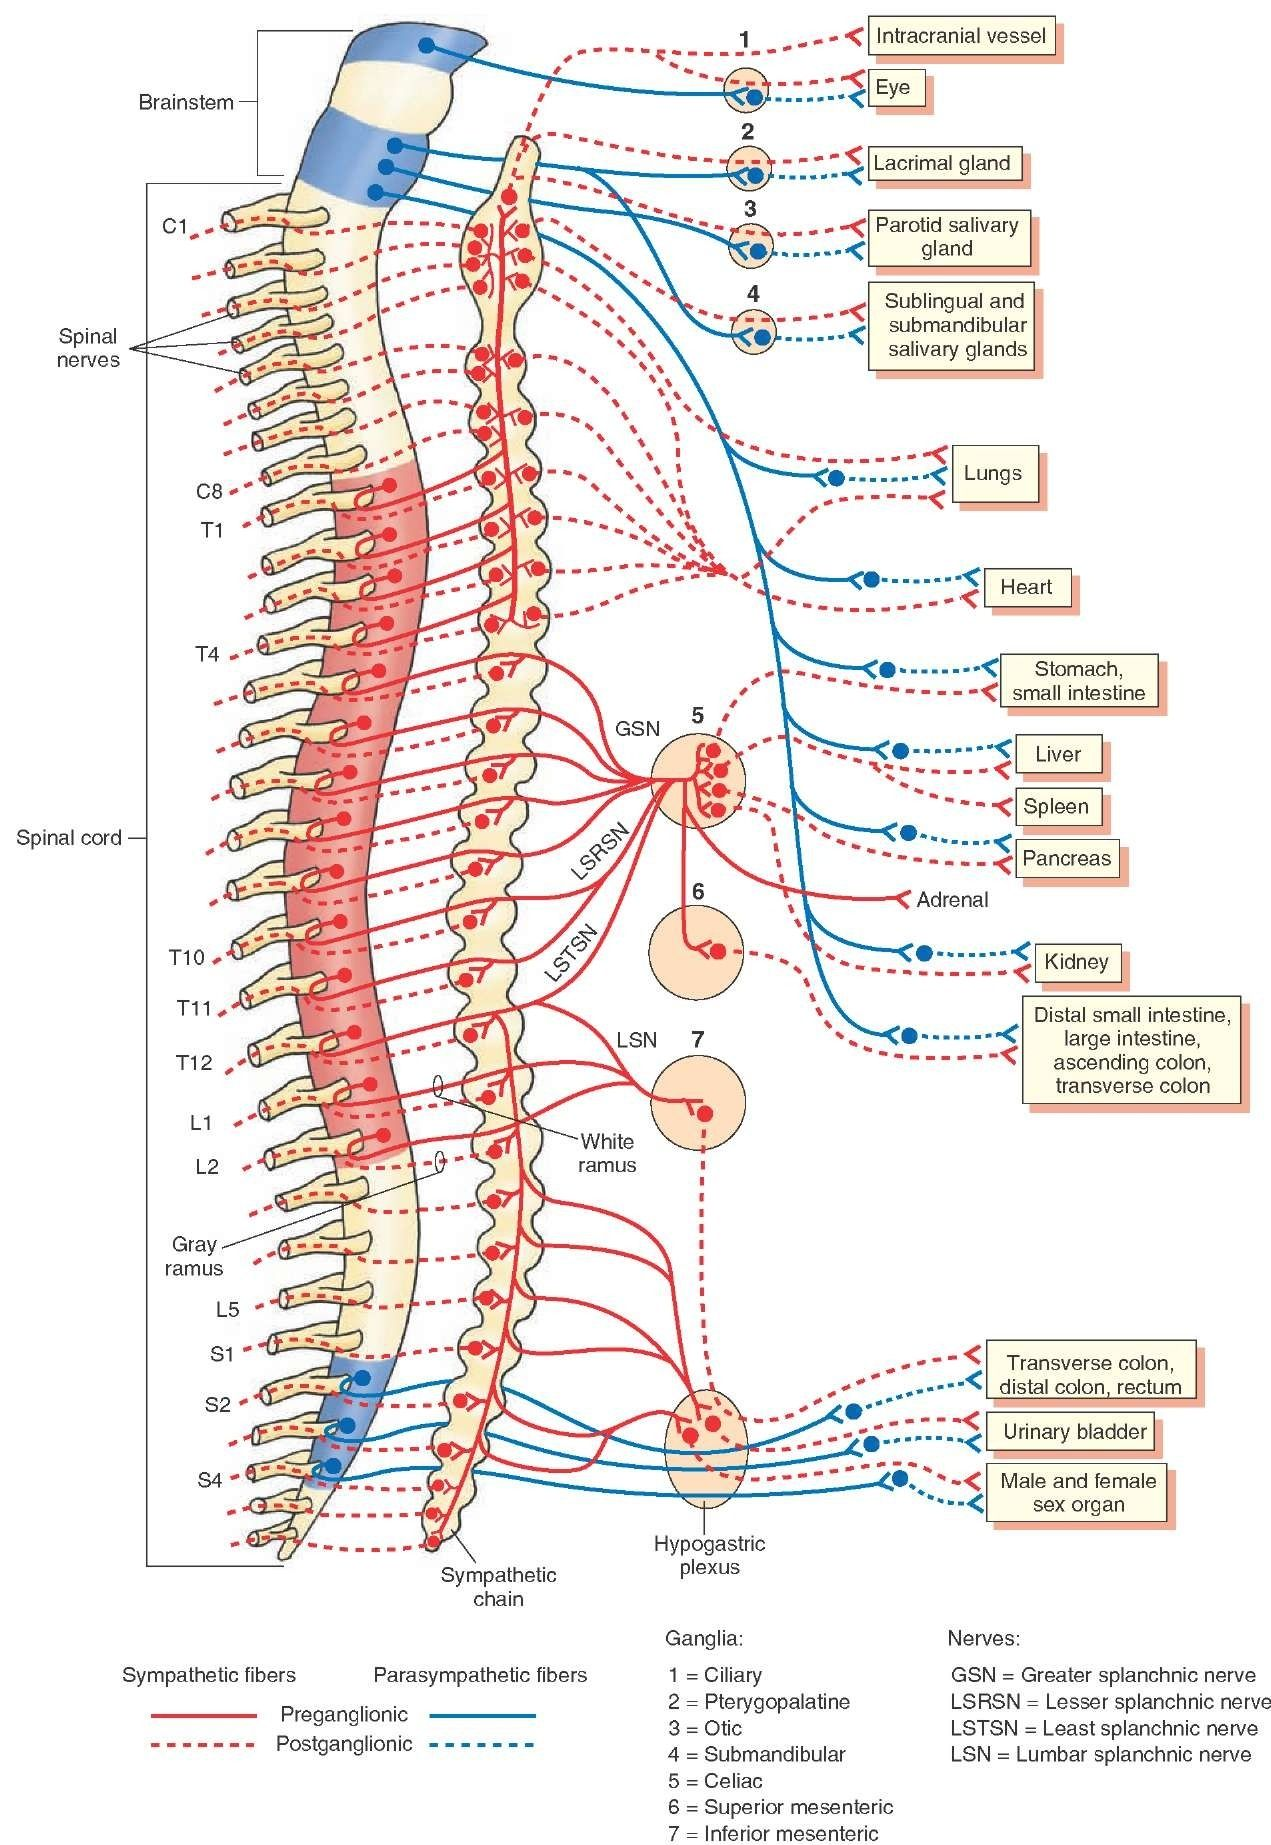 nerve innervation of the thoracic spine the autonomic nervous system integrative systems part 1 [ 1271 x 1845 Pixel ]